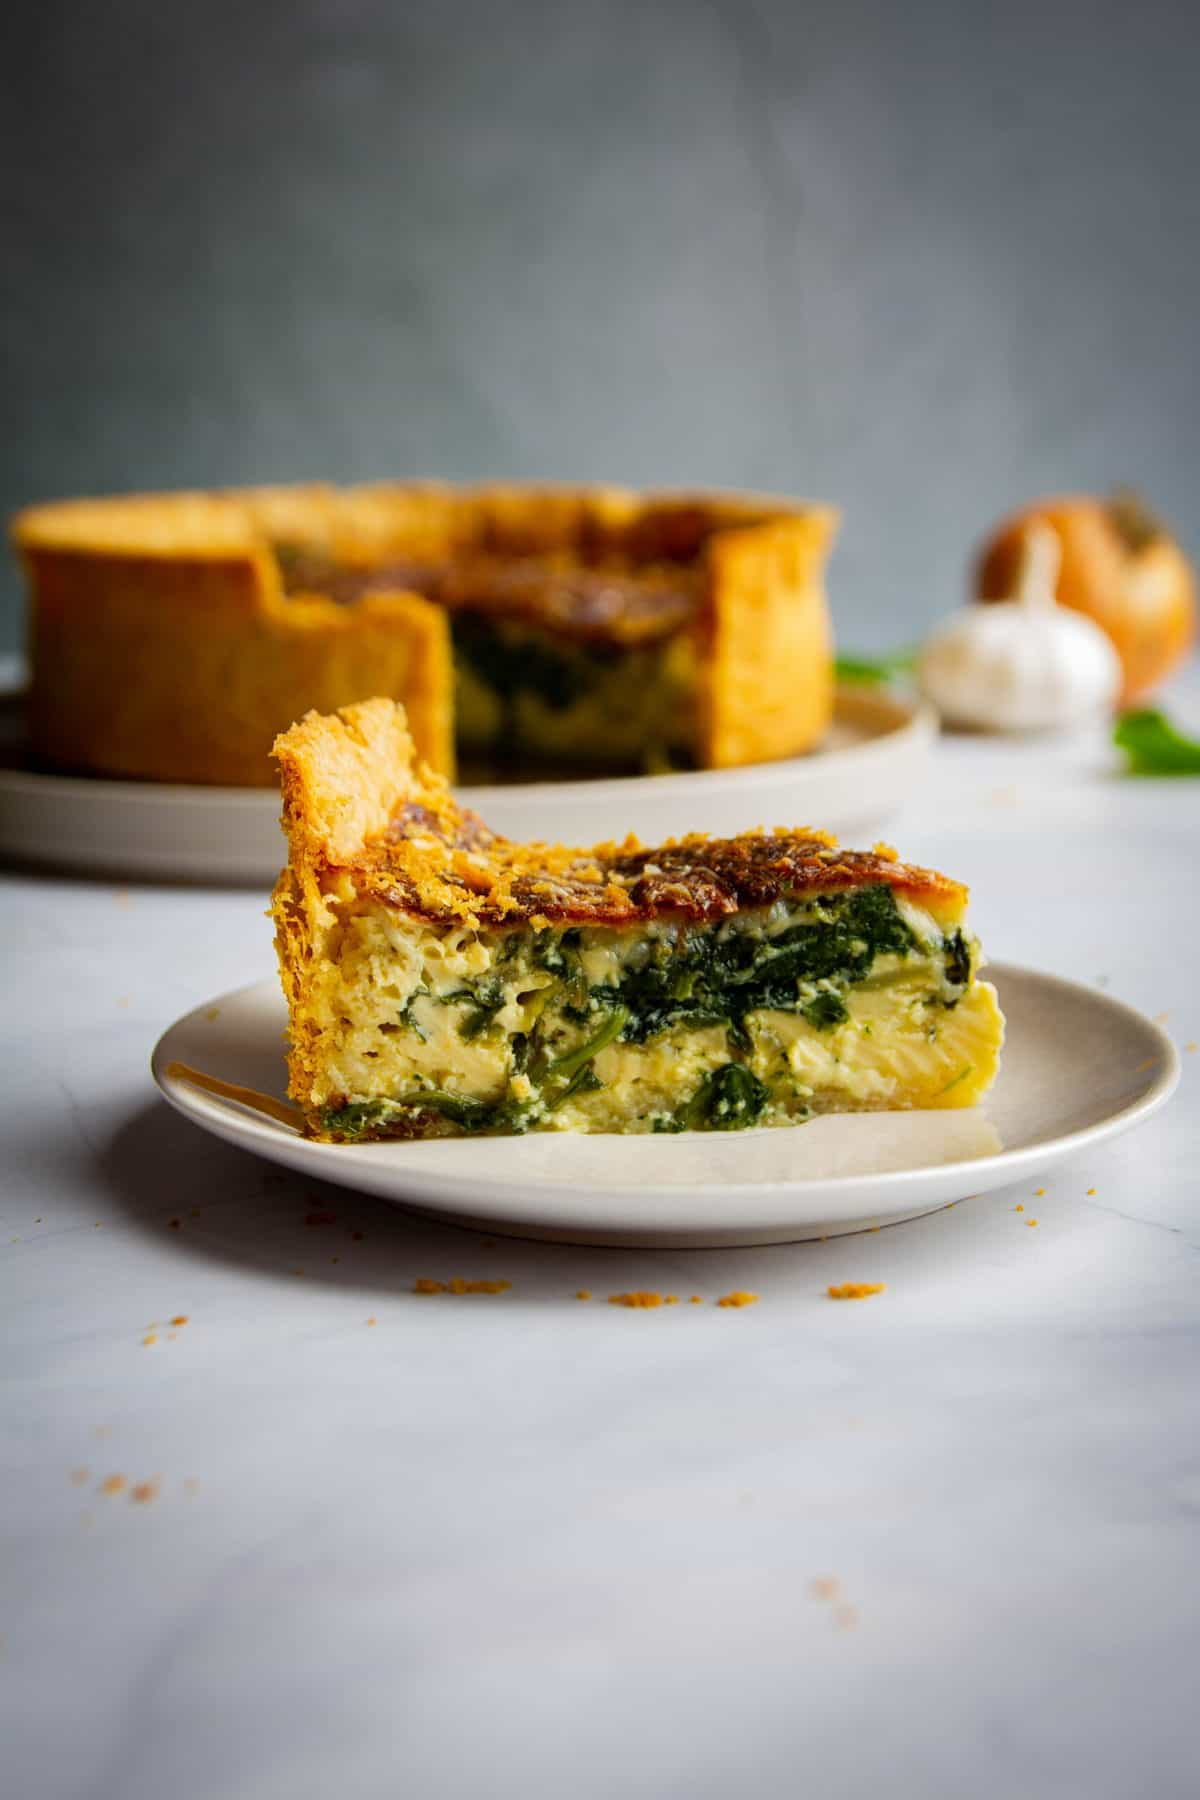 Side angle shot of a slice of quiche florentine with the rest of the quiche in the background.